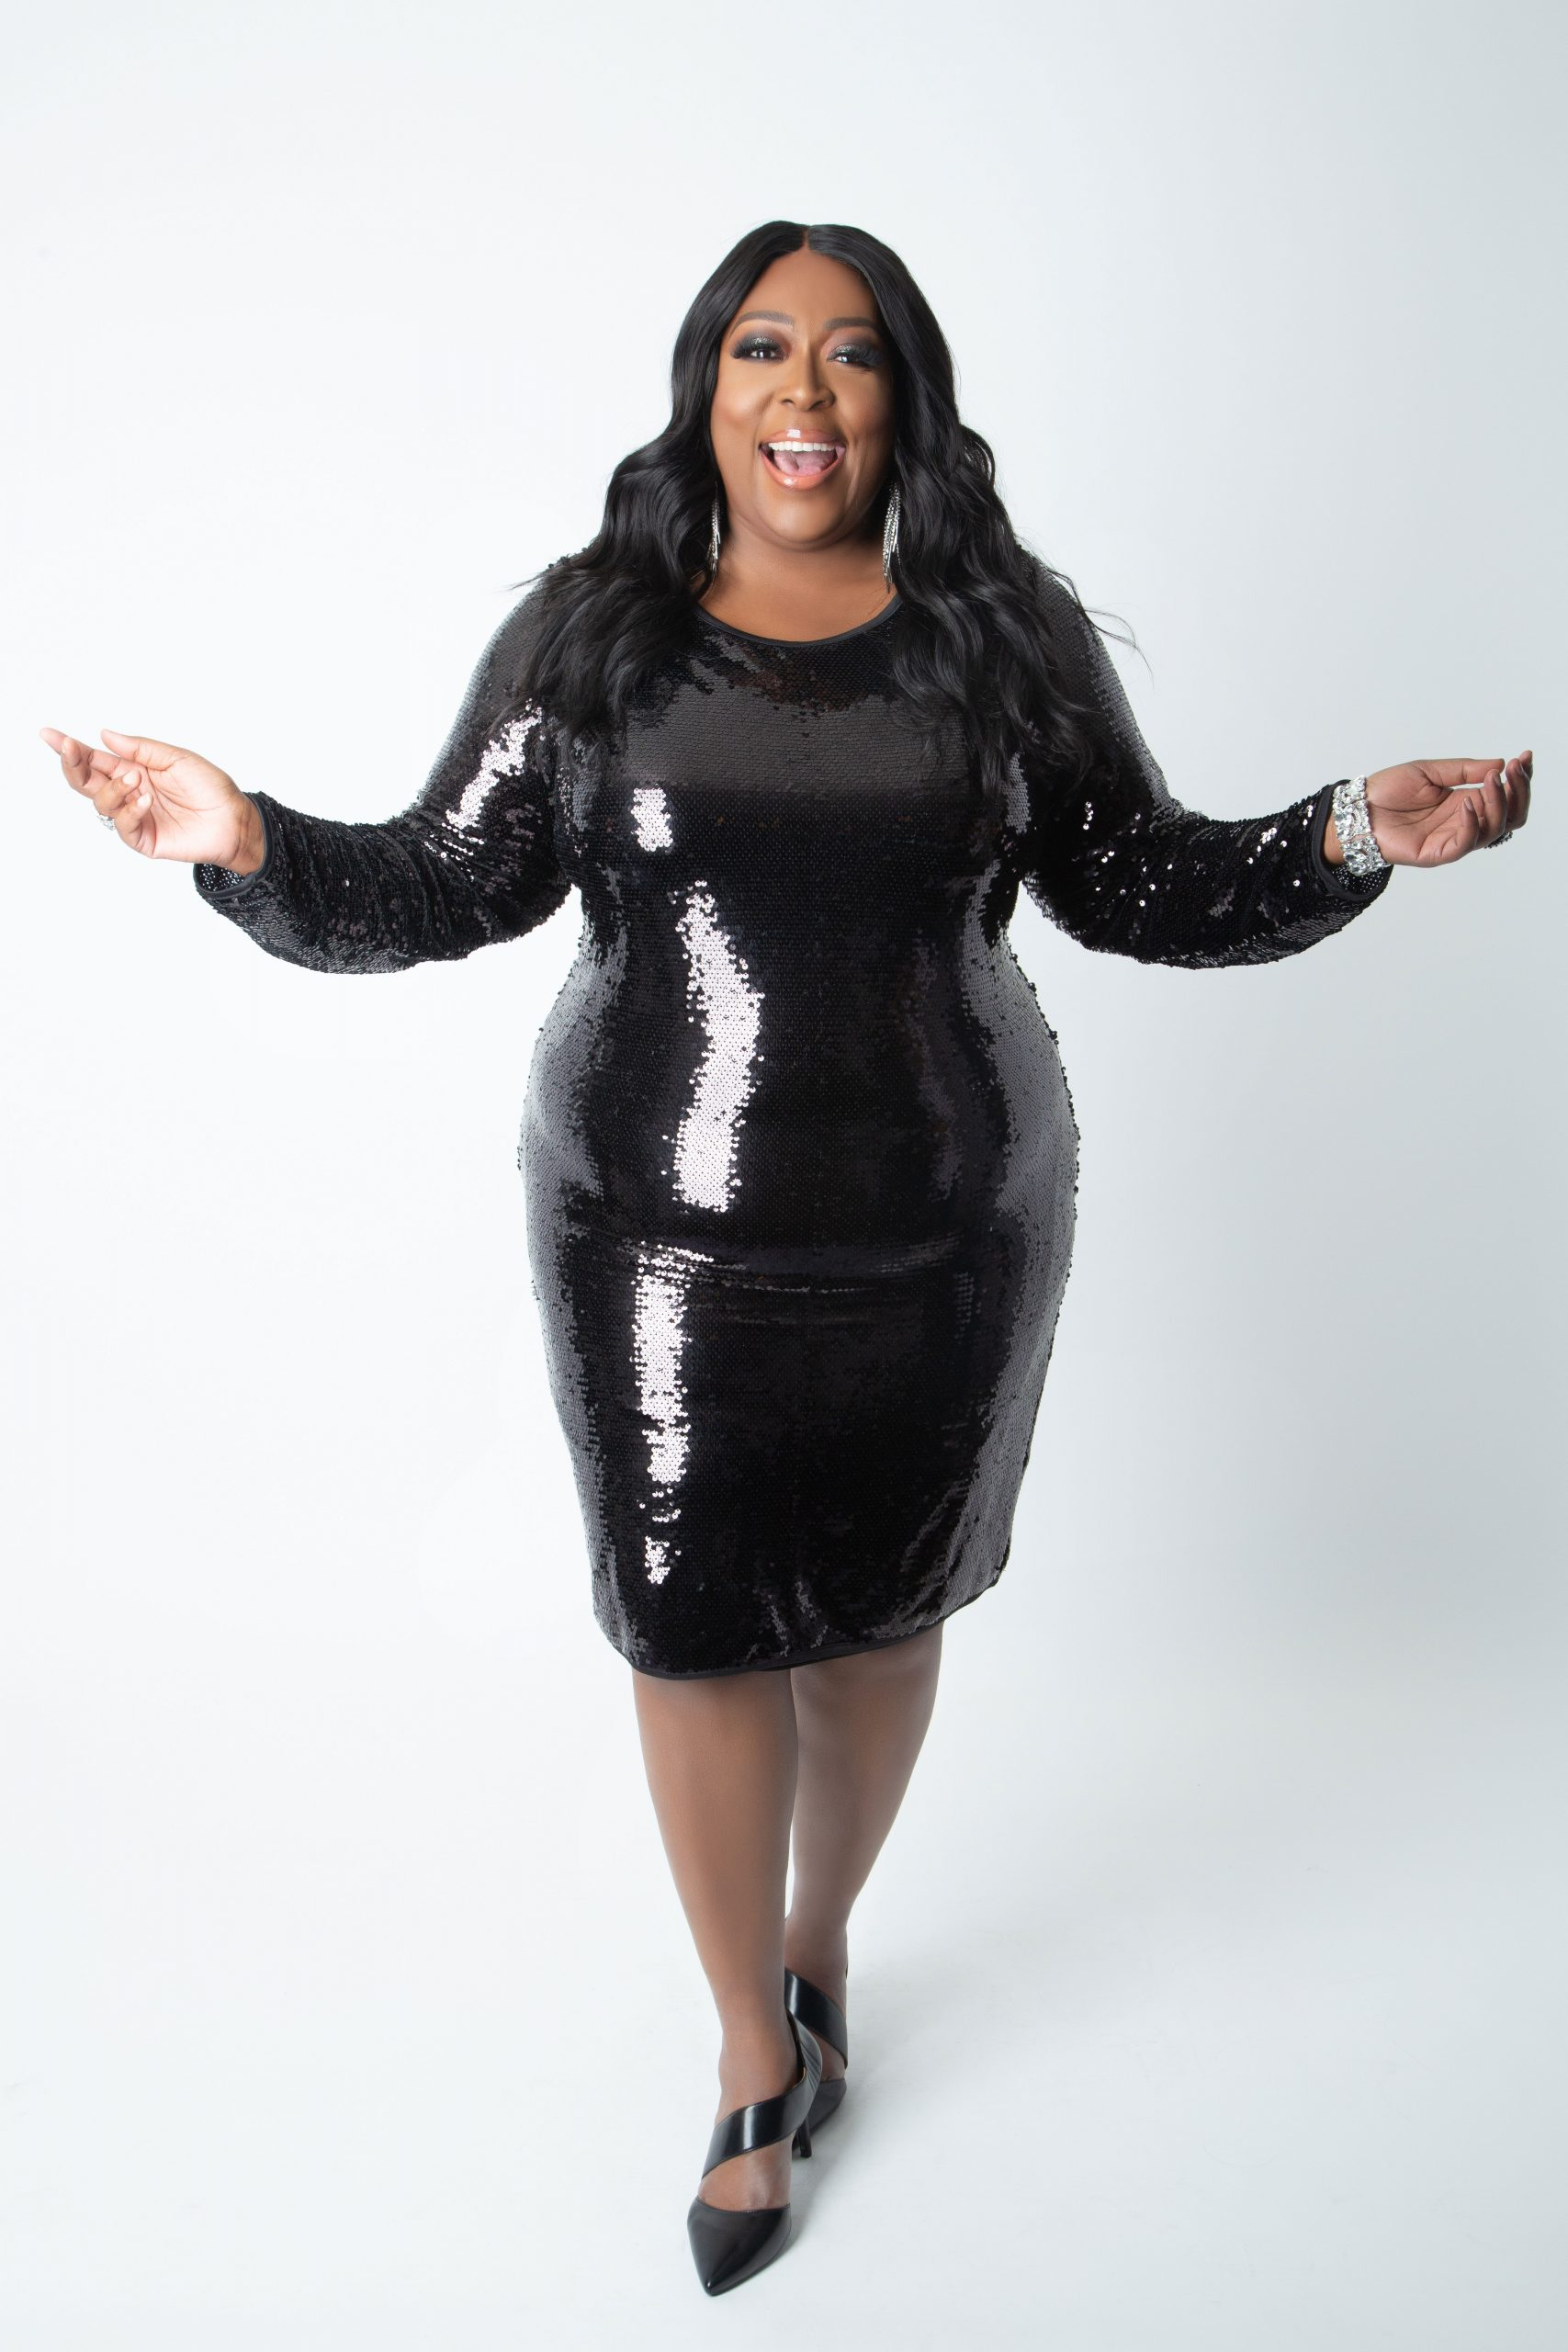 Loni Love x Ashley Stewart Plus Size Holiday Collection